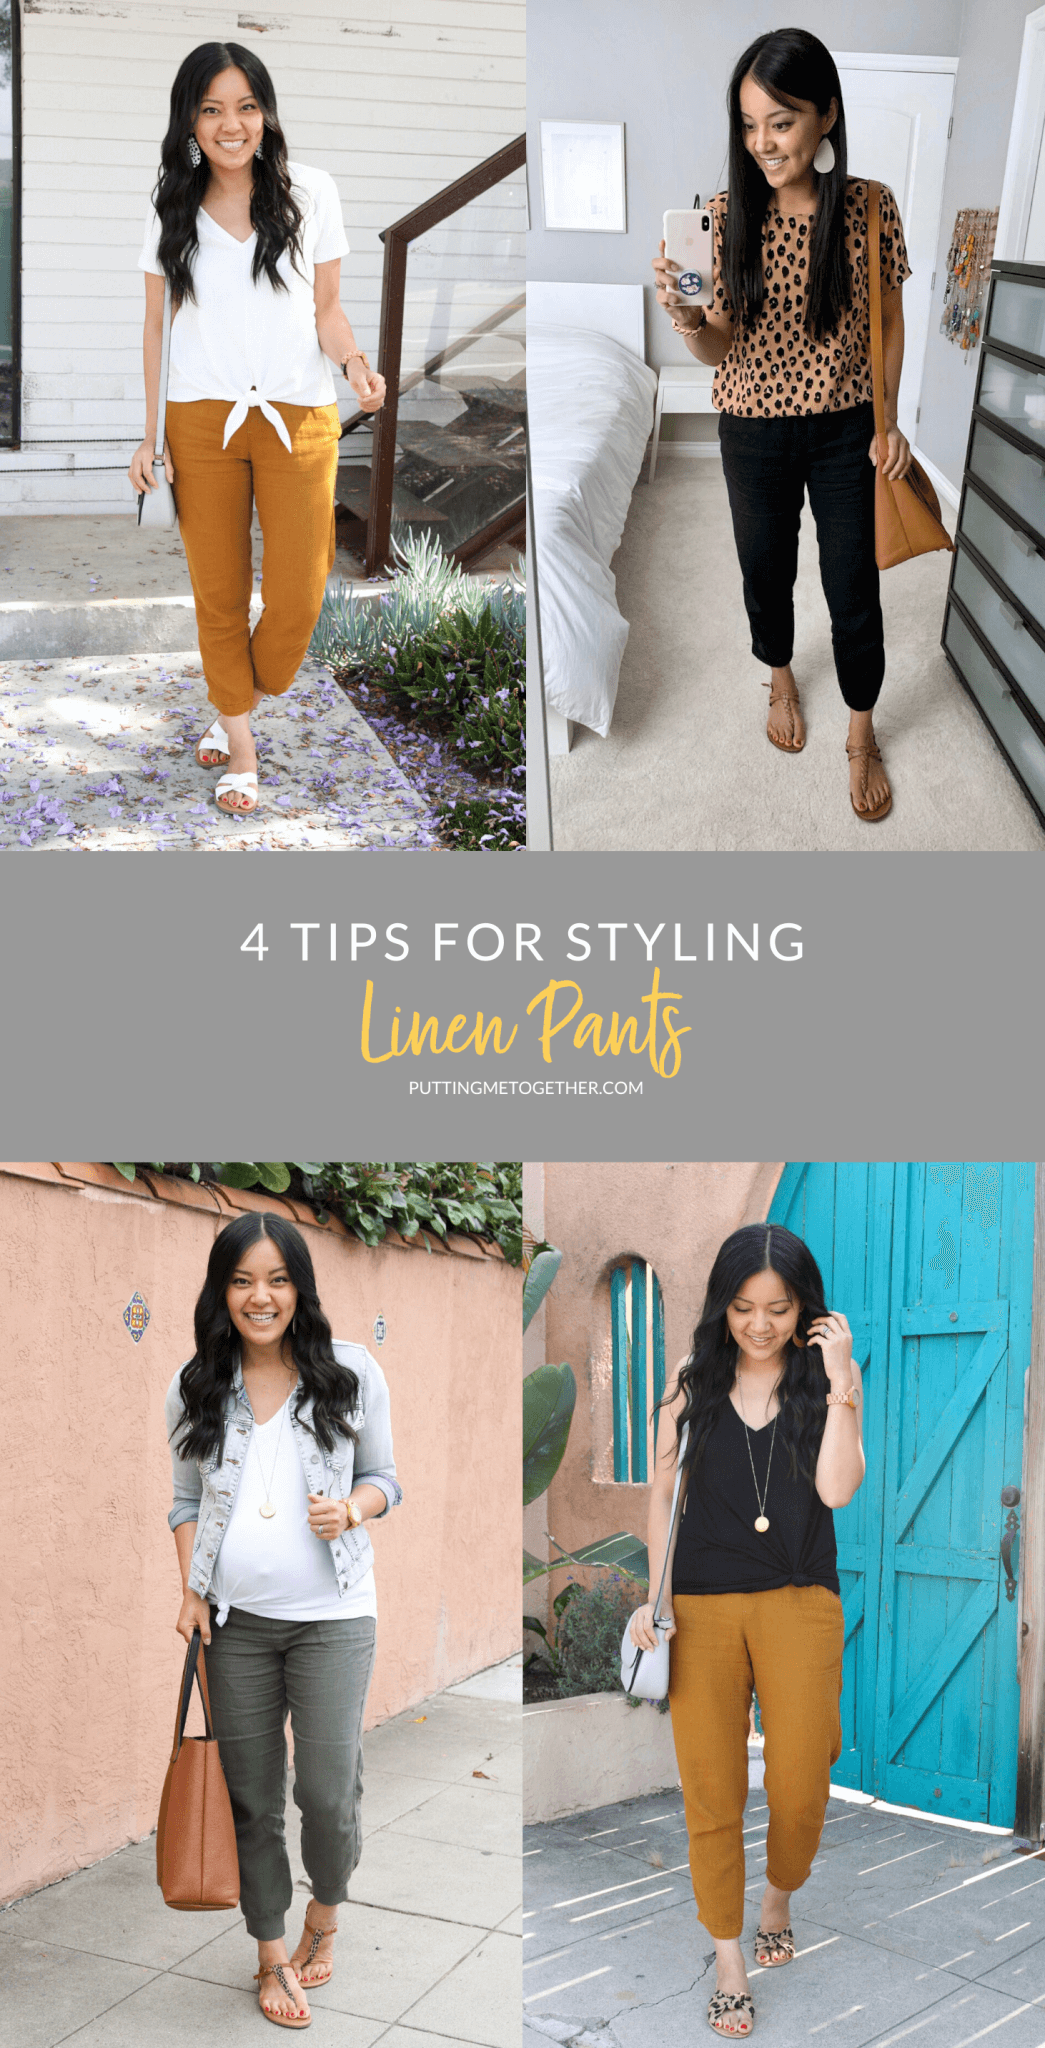 4 Styling Tips for Linen Pants